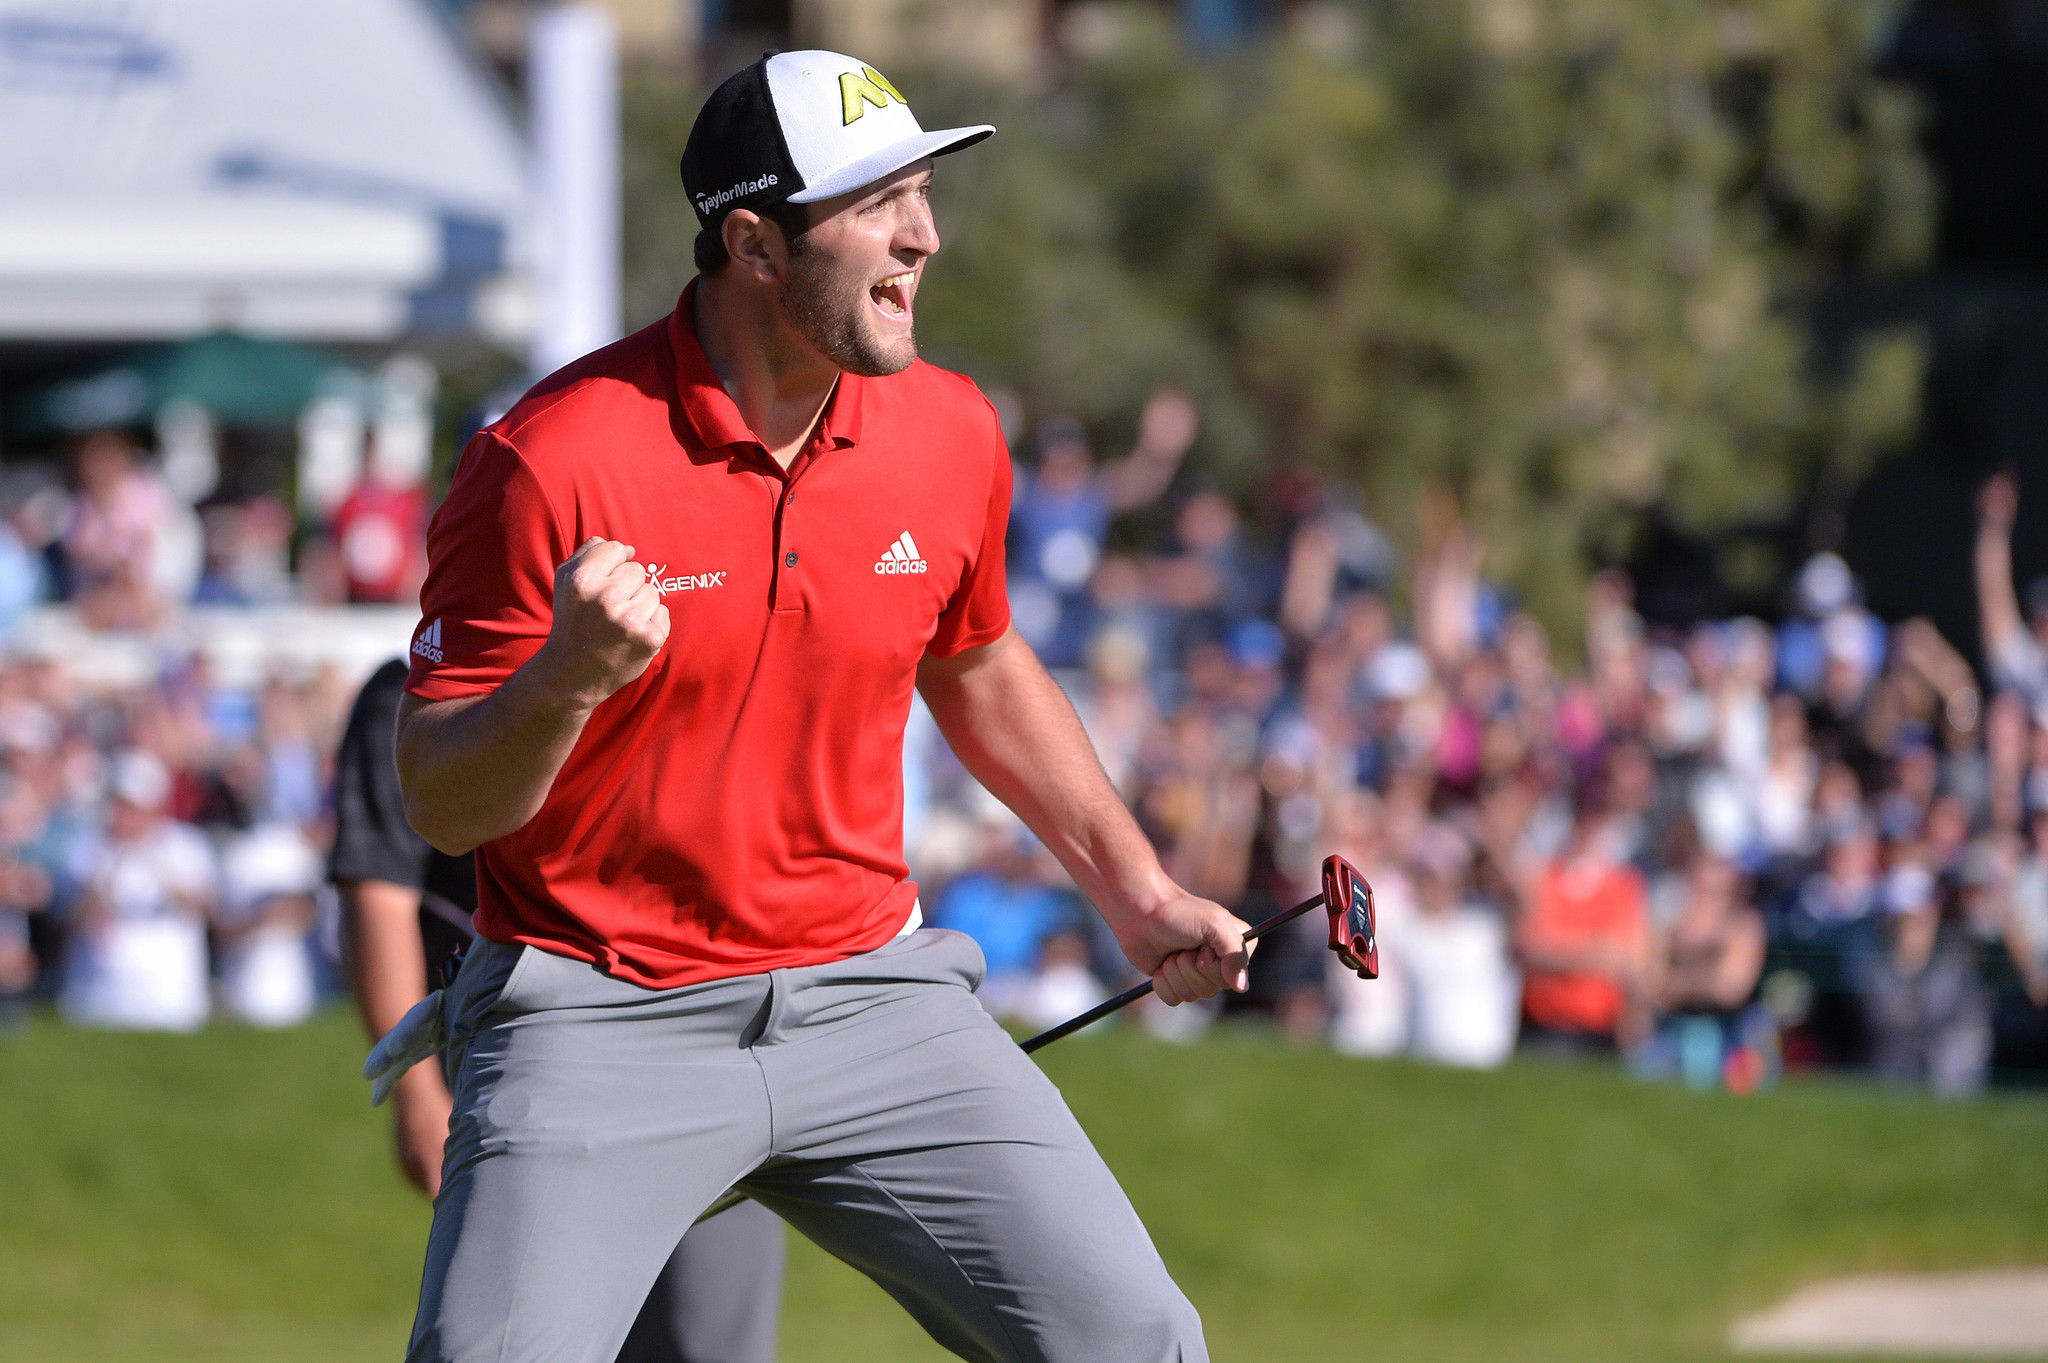 Eagles land Rahm in Farmers winners' circle